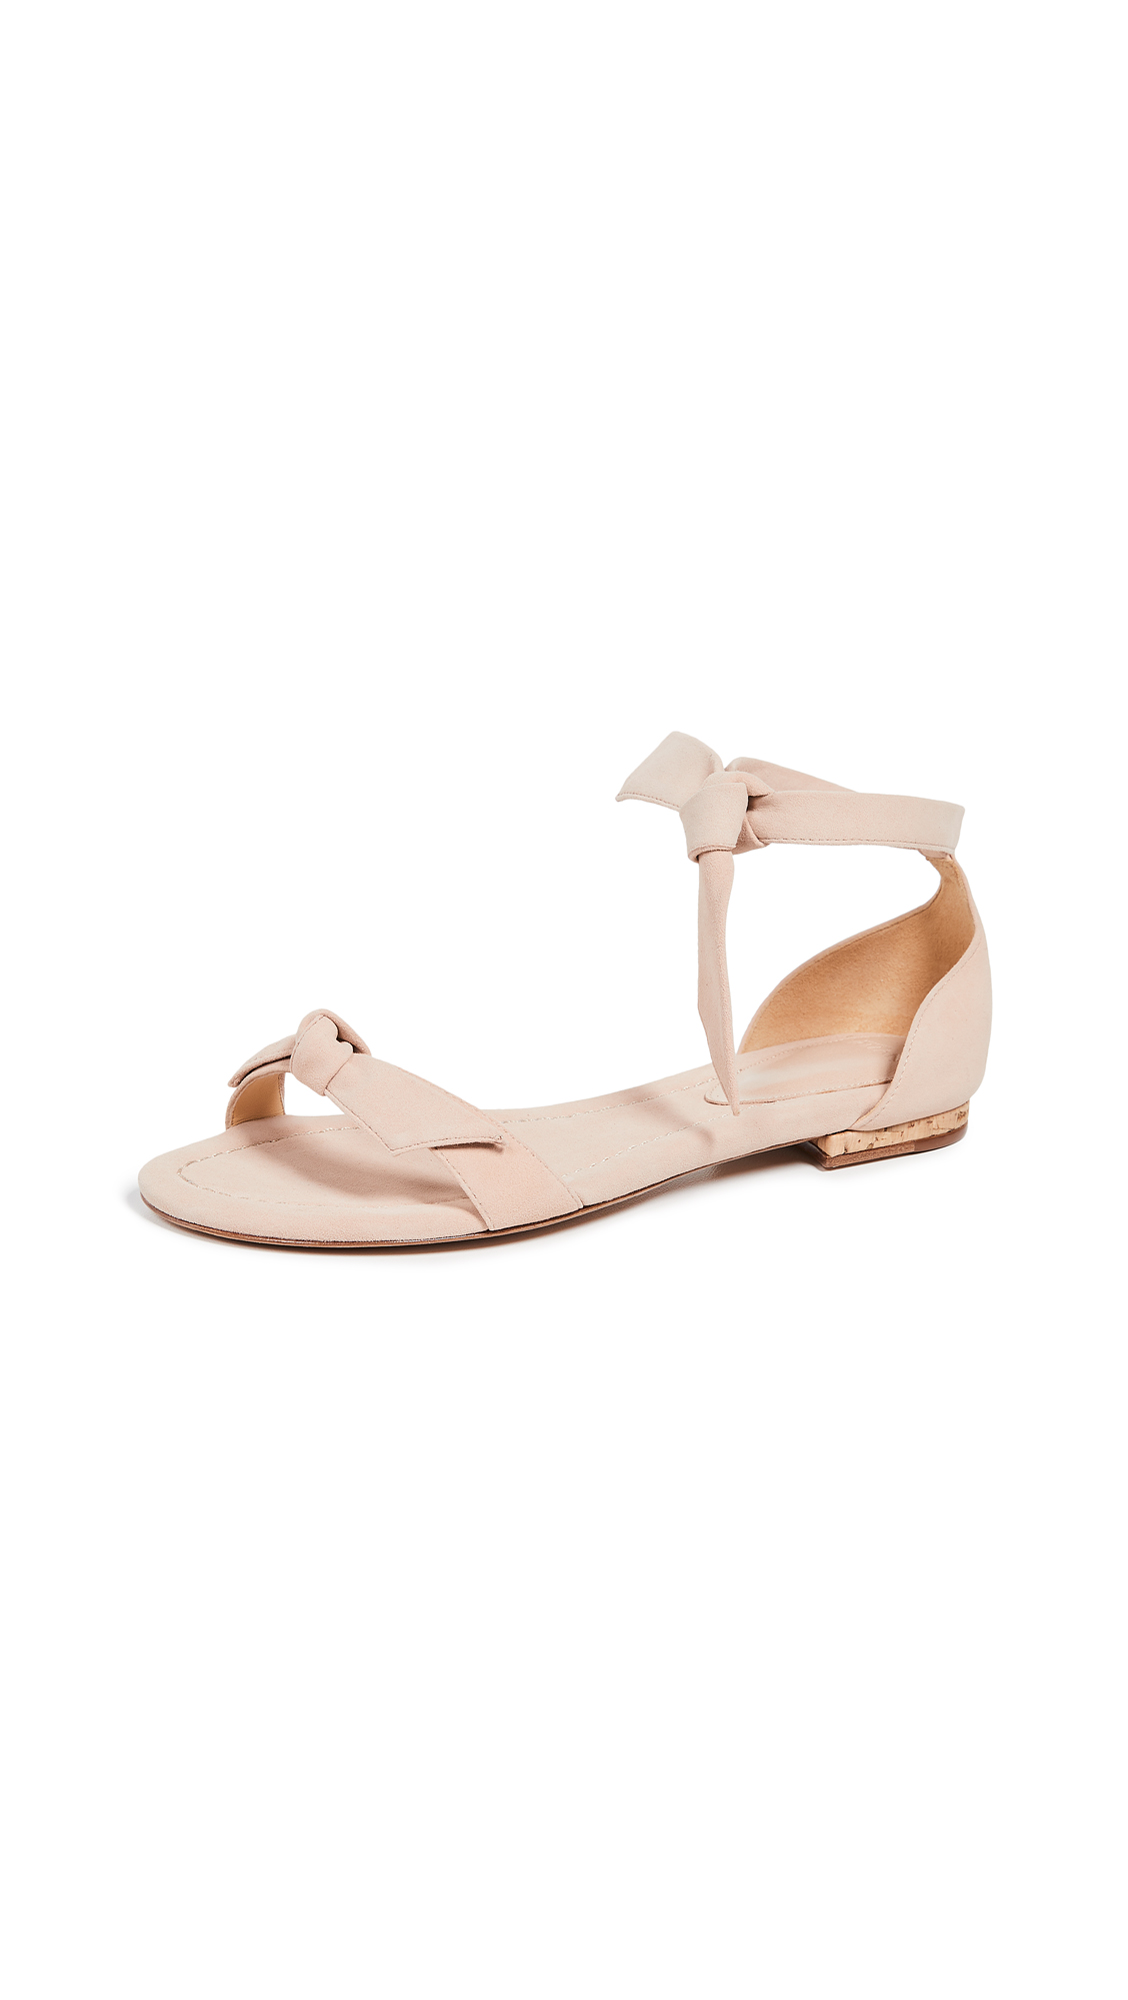 Alexandre Birman Clarita Amalfi Flat Sandals - Light Sand/Natural